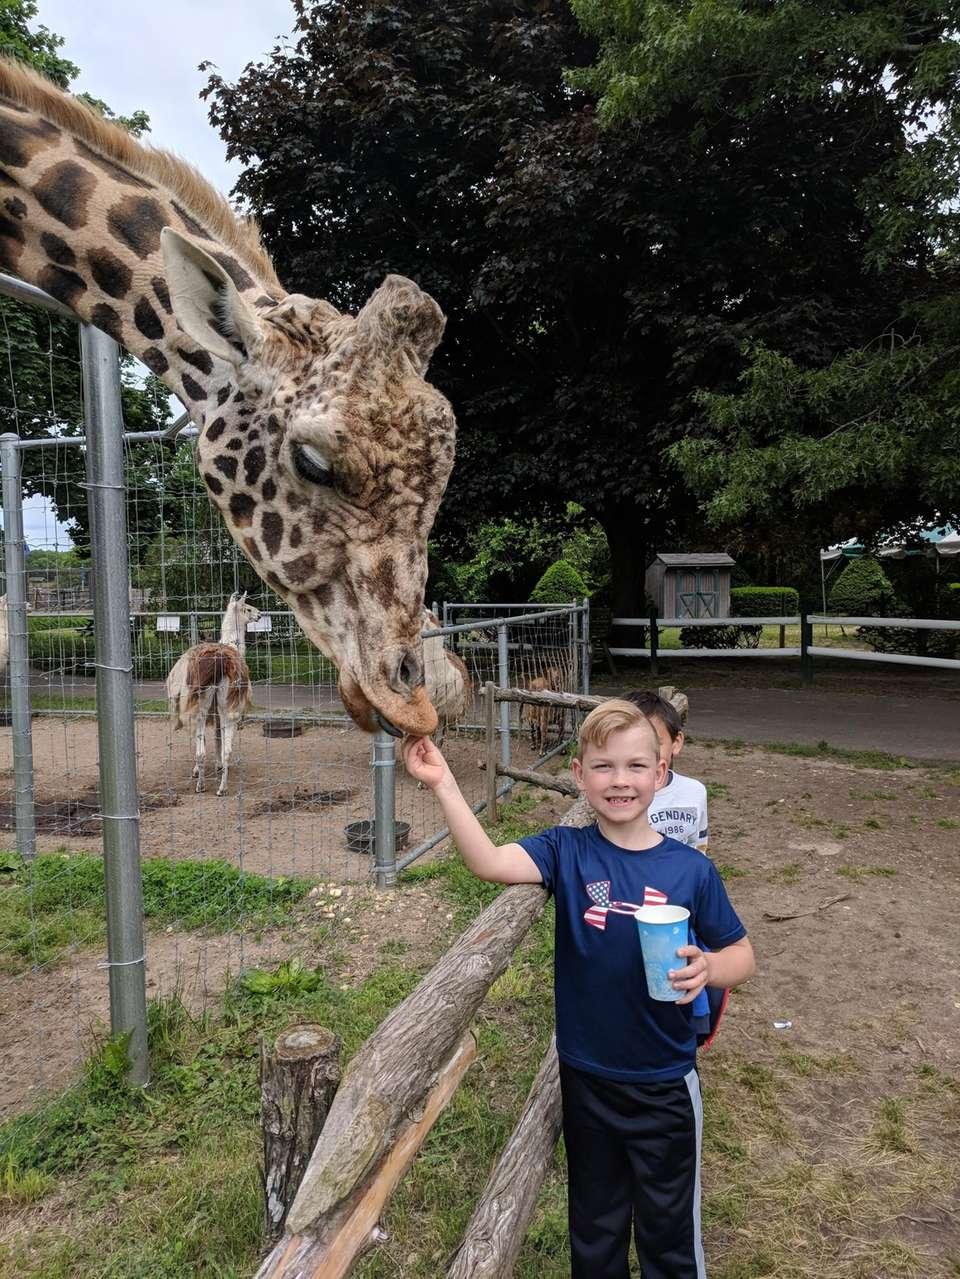 Preston Kohl feeding Clifford, the giraffe, at the